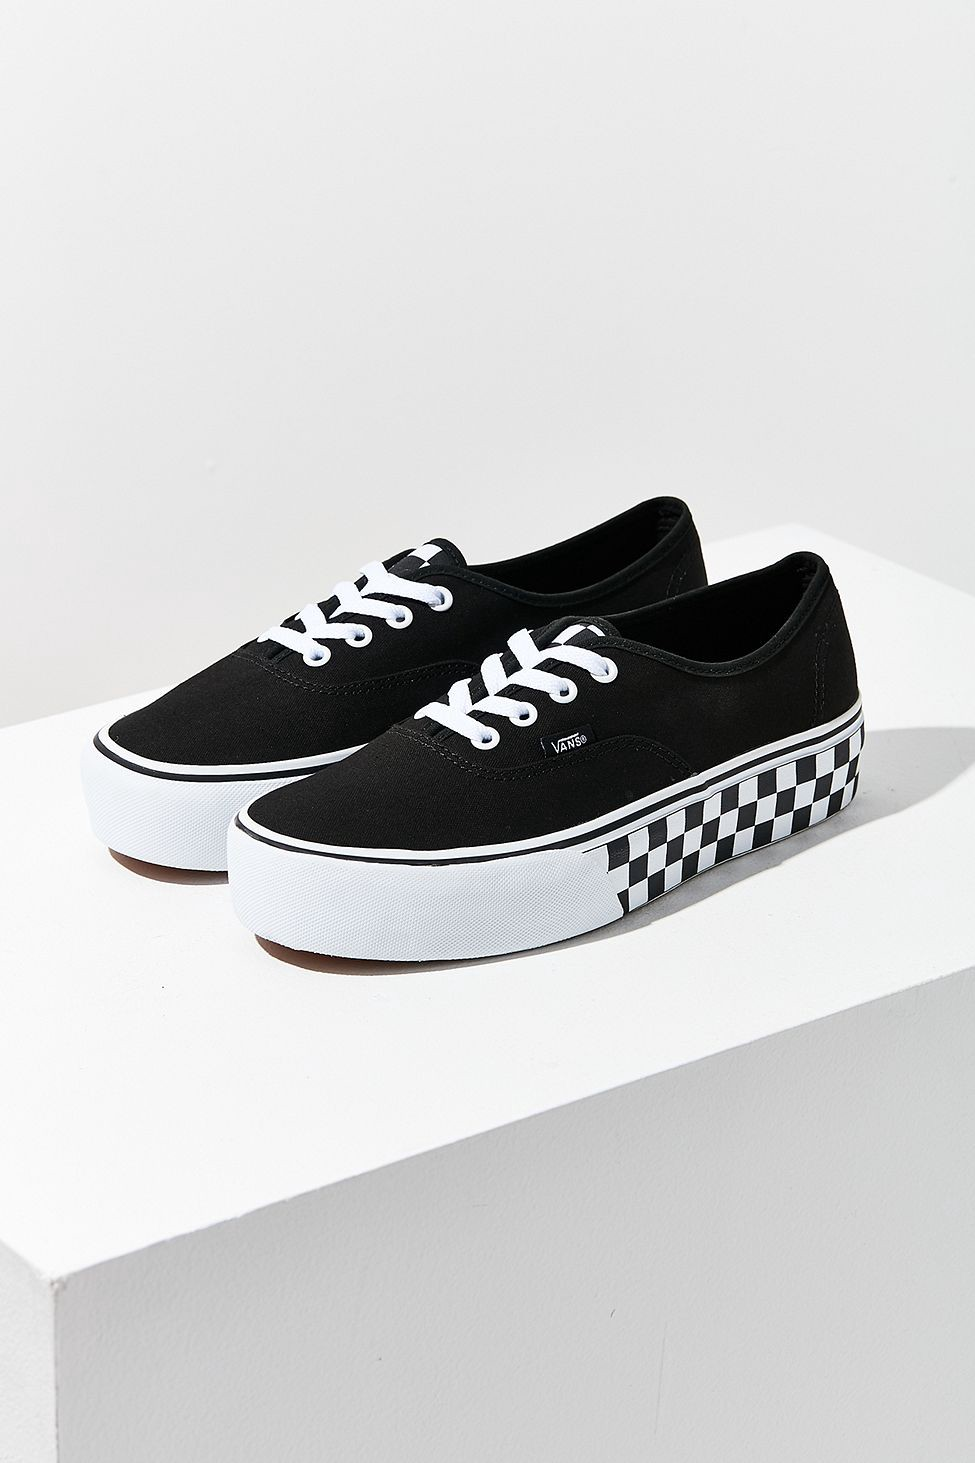 ad1f53f351e0 Urban Outfitters Vans   Uo Authentic Platform Sneaker - W 7 M 5.5 ...